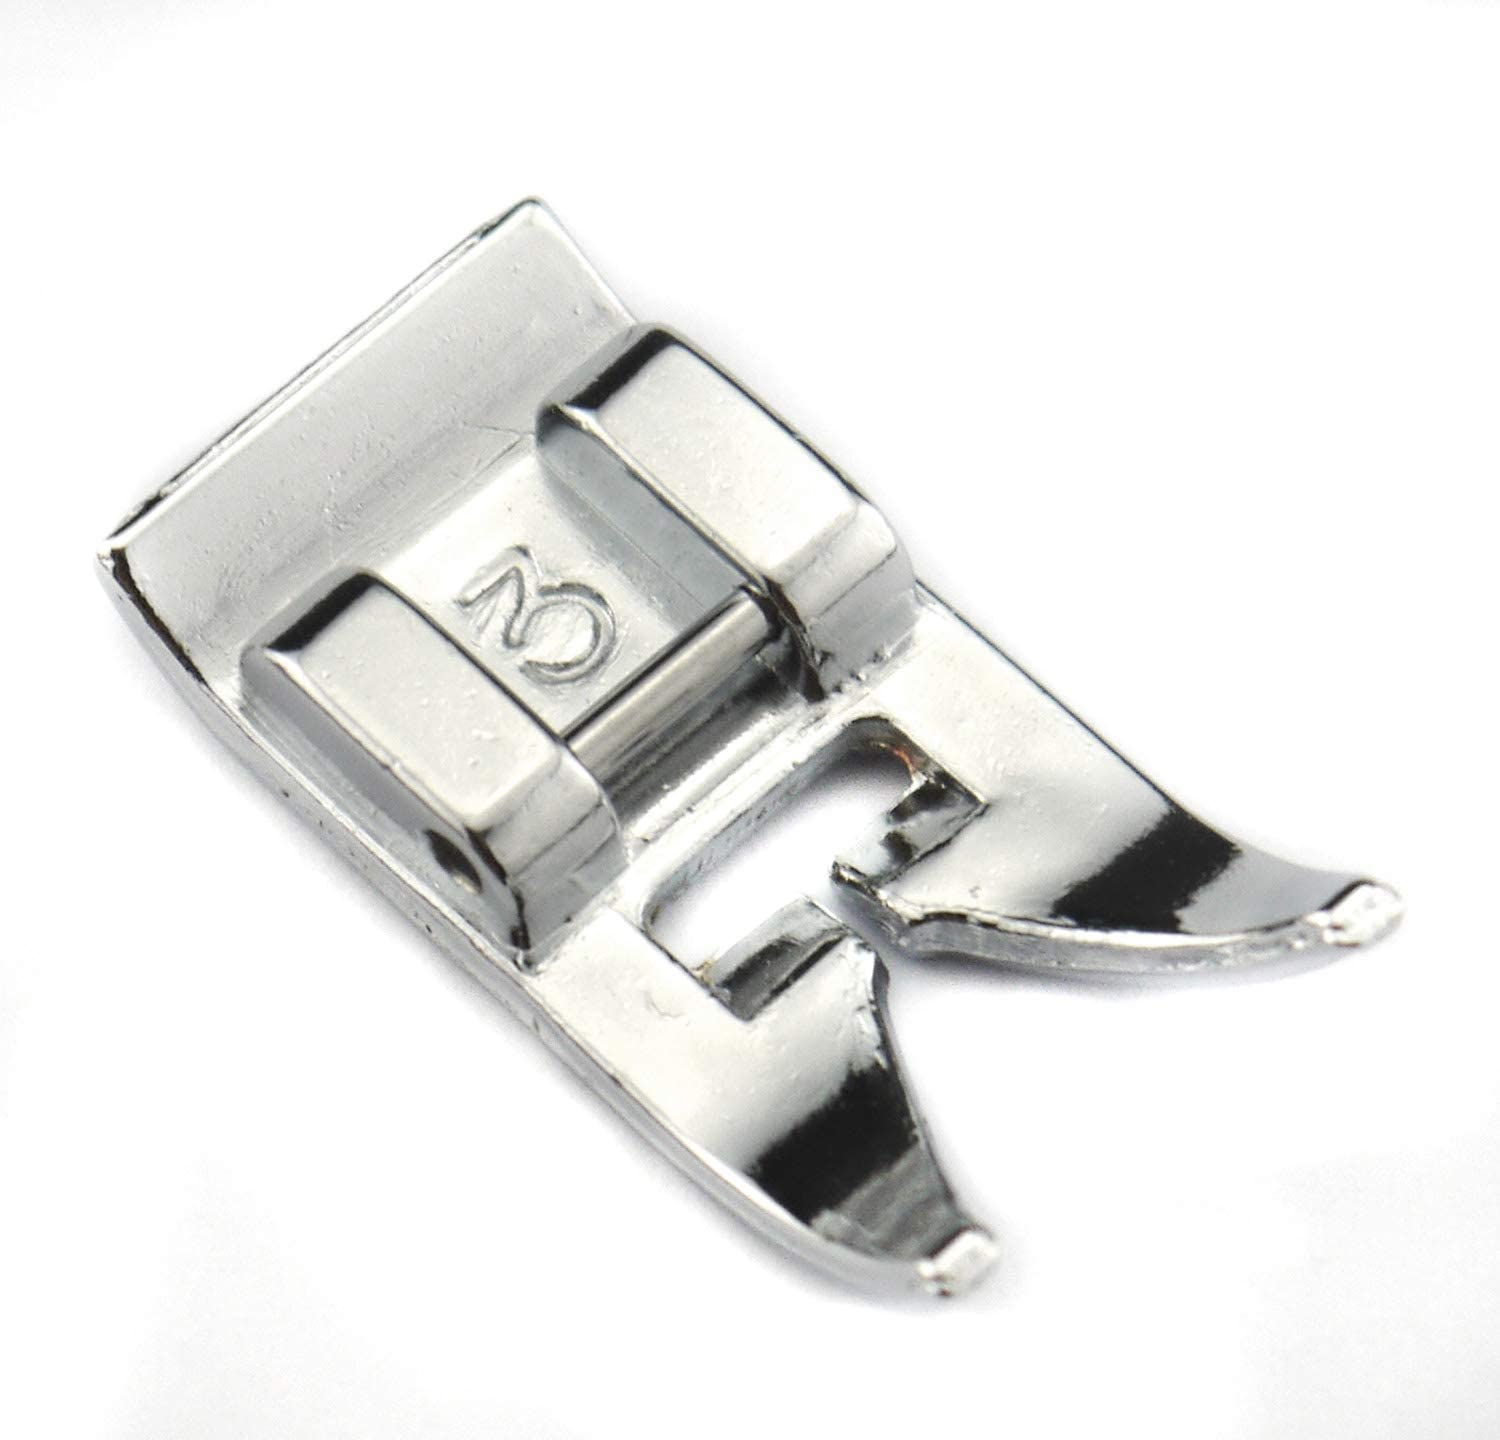 ZIGZAGSTORM 5013-3 Snap On Zig Zag Presser Foot for Babylock,Riccar,Simplicity Sewing Machine